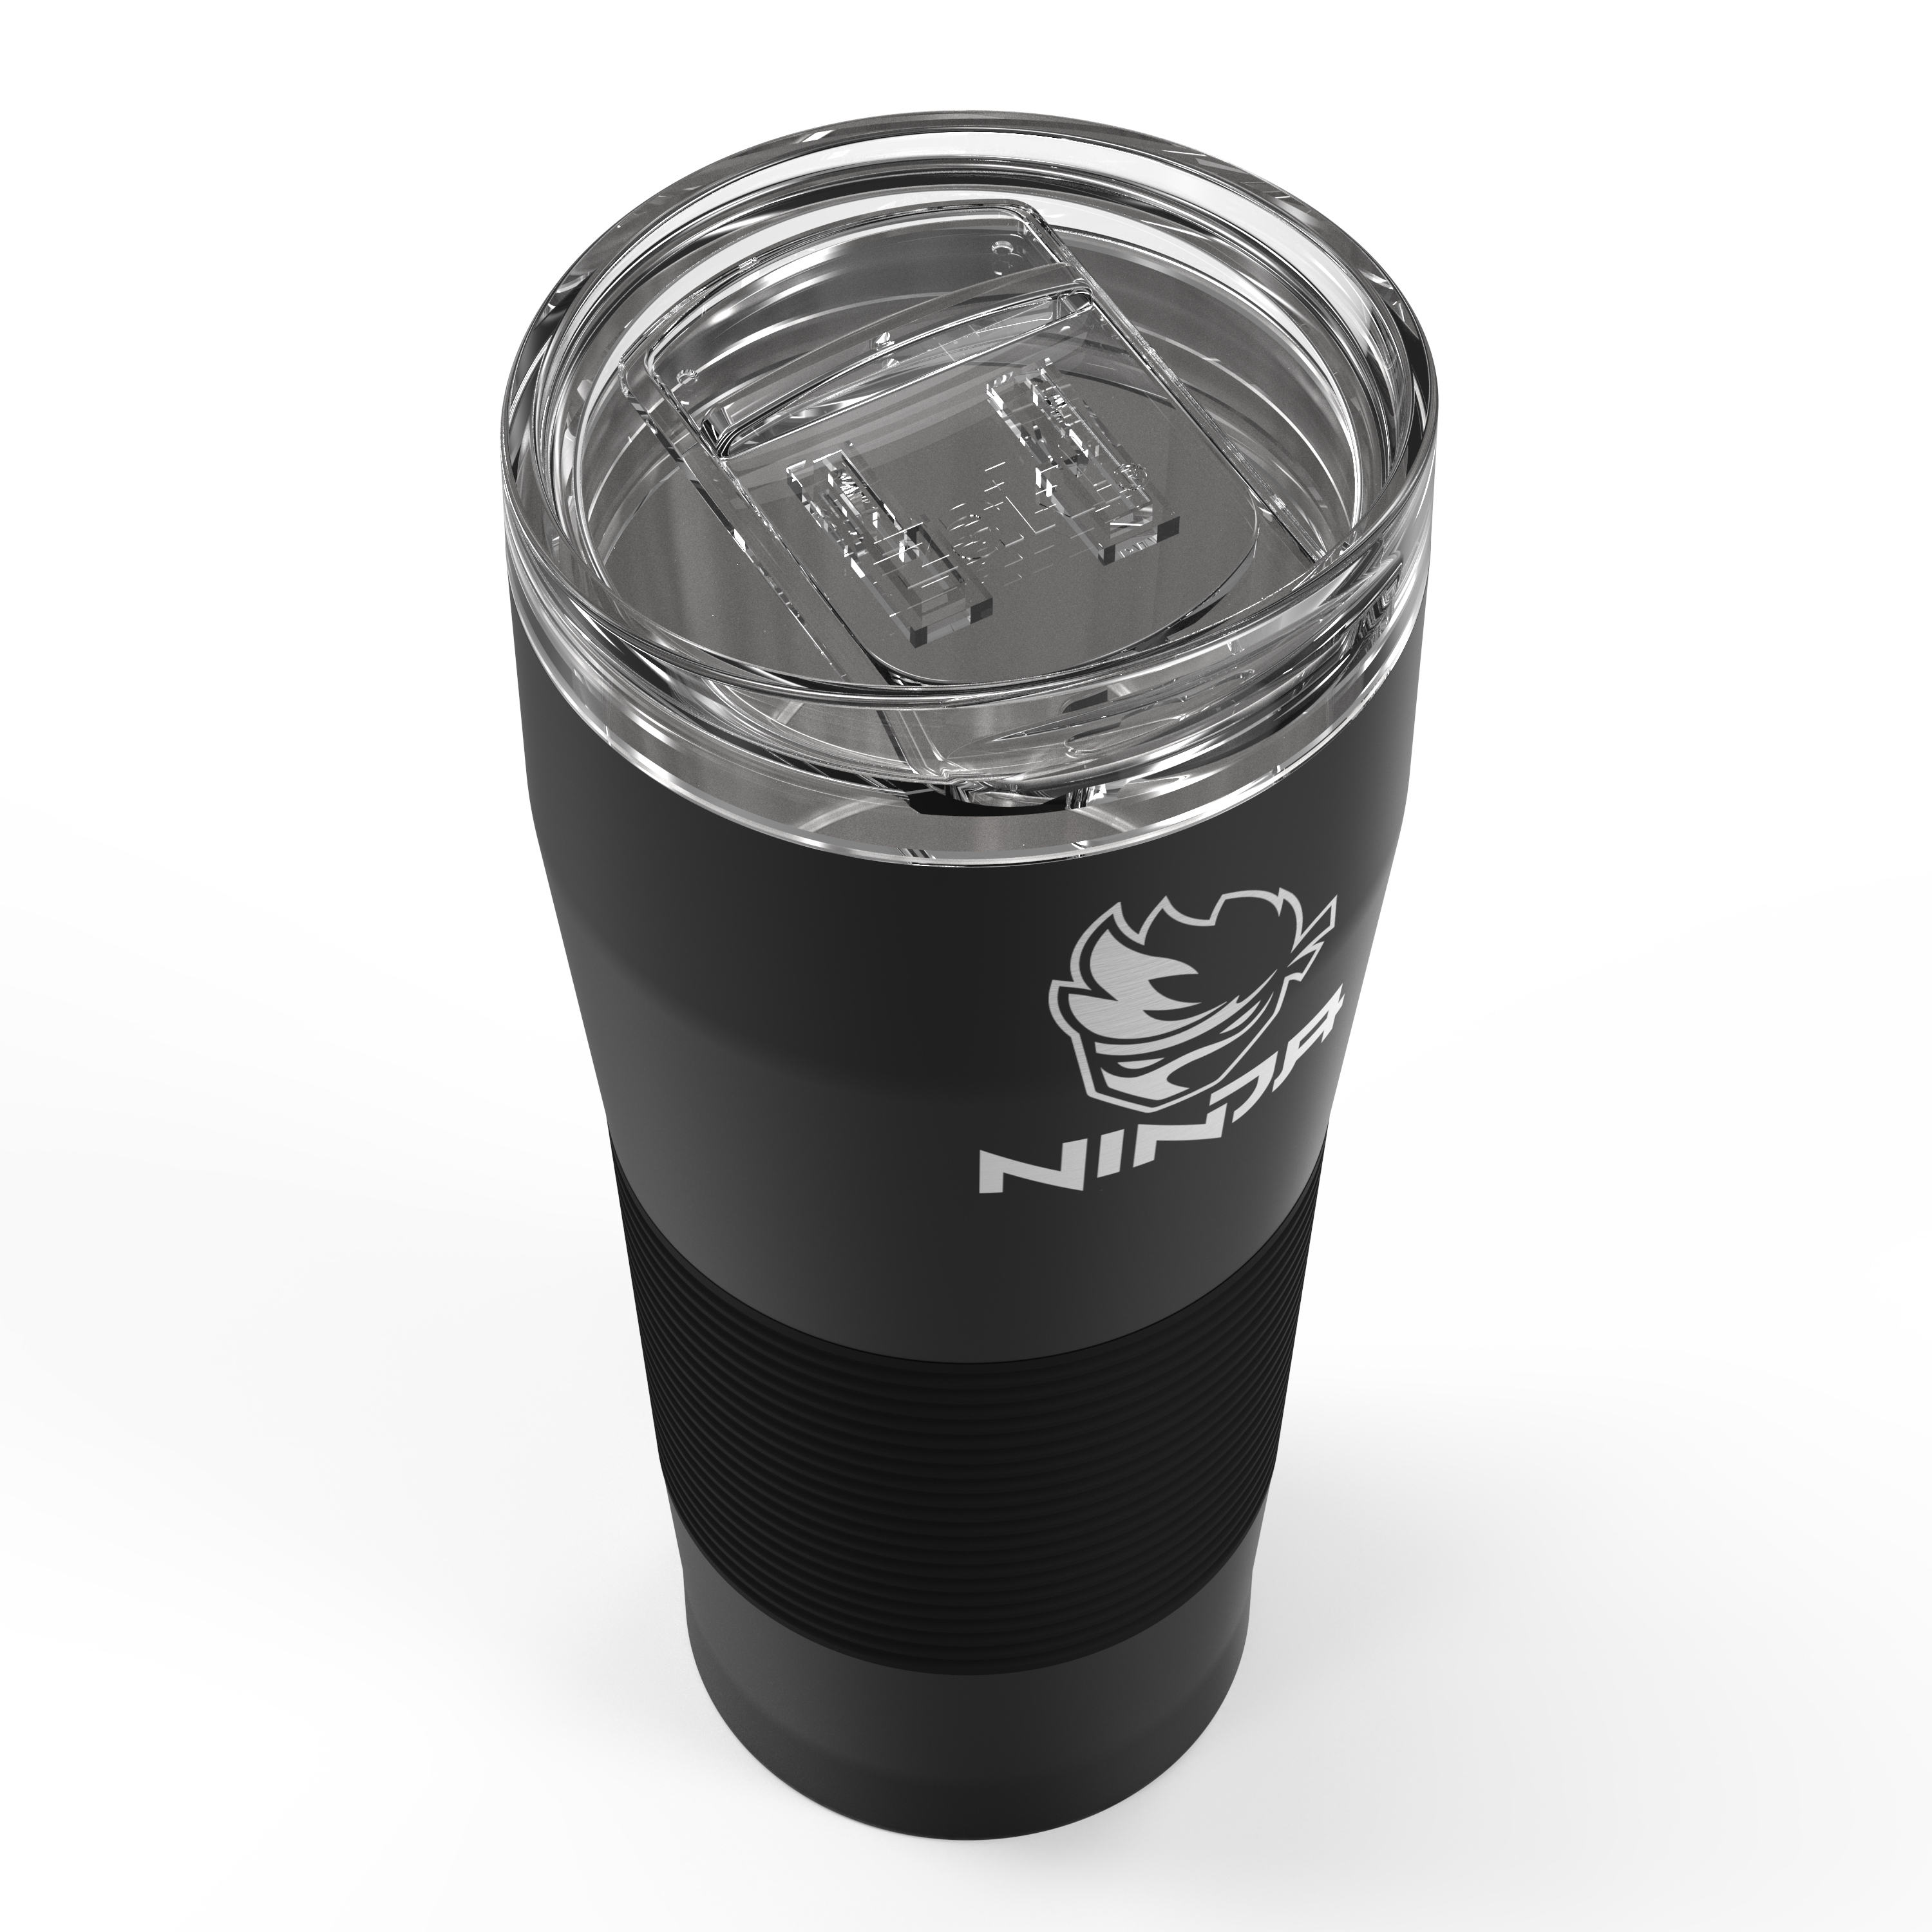 Ninja 28 ounce Vacuum Insulated Stainless Steel Tumbler, Video Games slideshow image 2